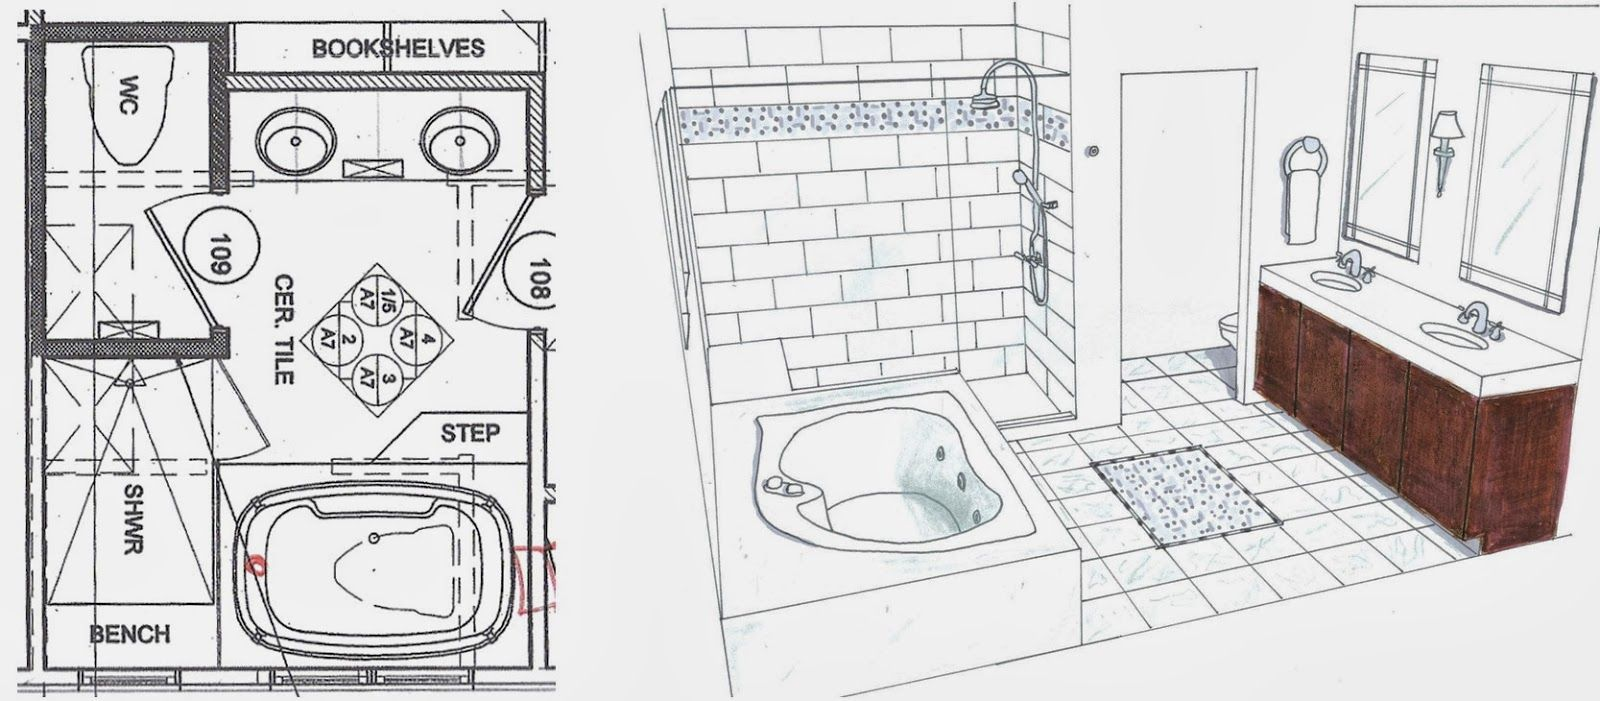 Design Bathroom Floor Plan Exactly These Bathroom Floor Plans Are Going To Make The .